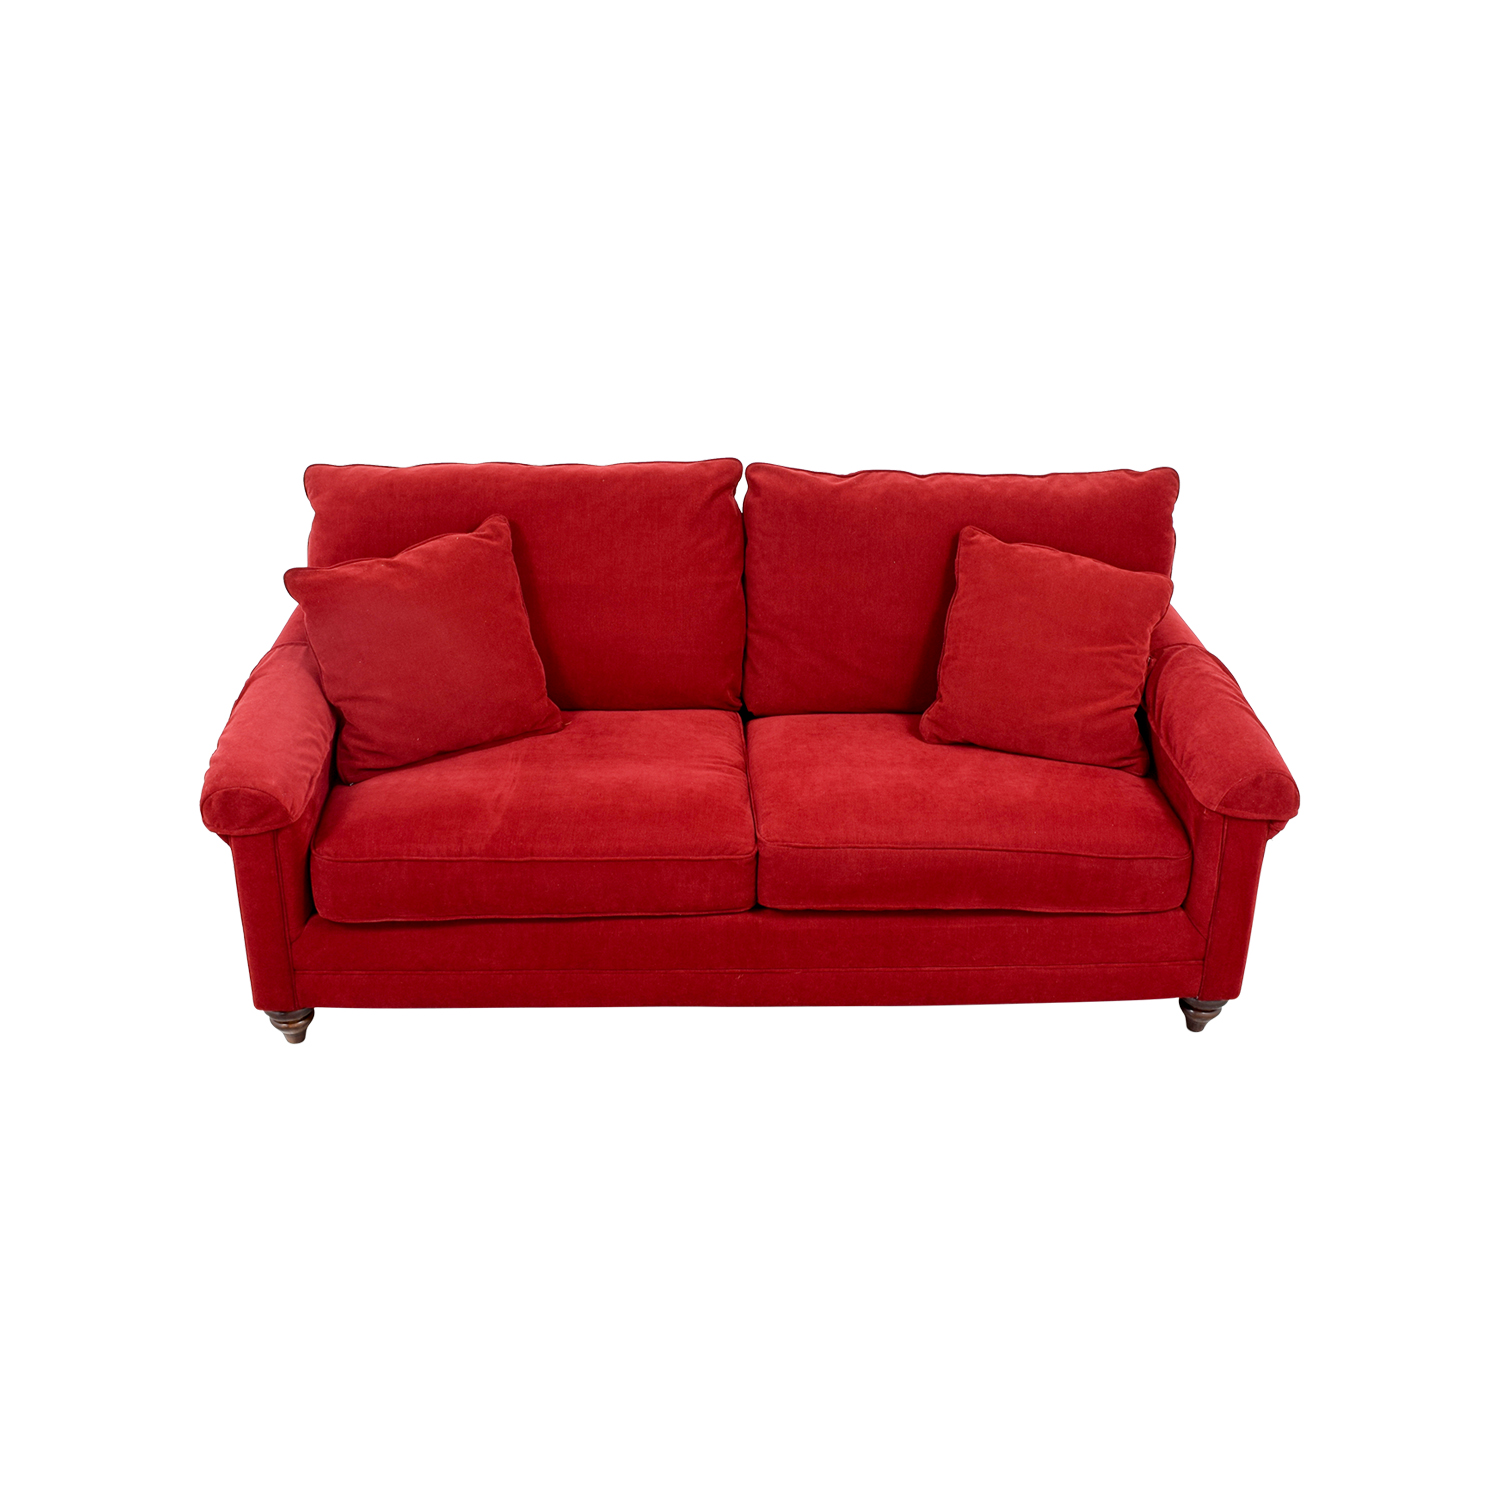 Bassett Red Curved Arm Two-Cushion Couch / Sofas